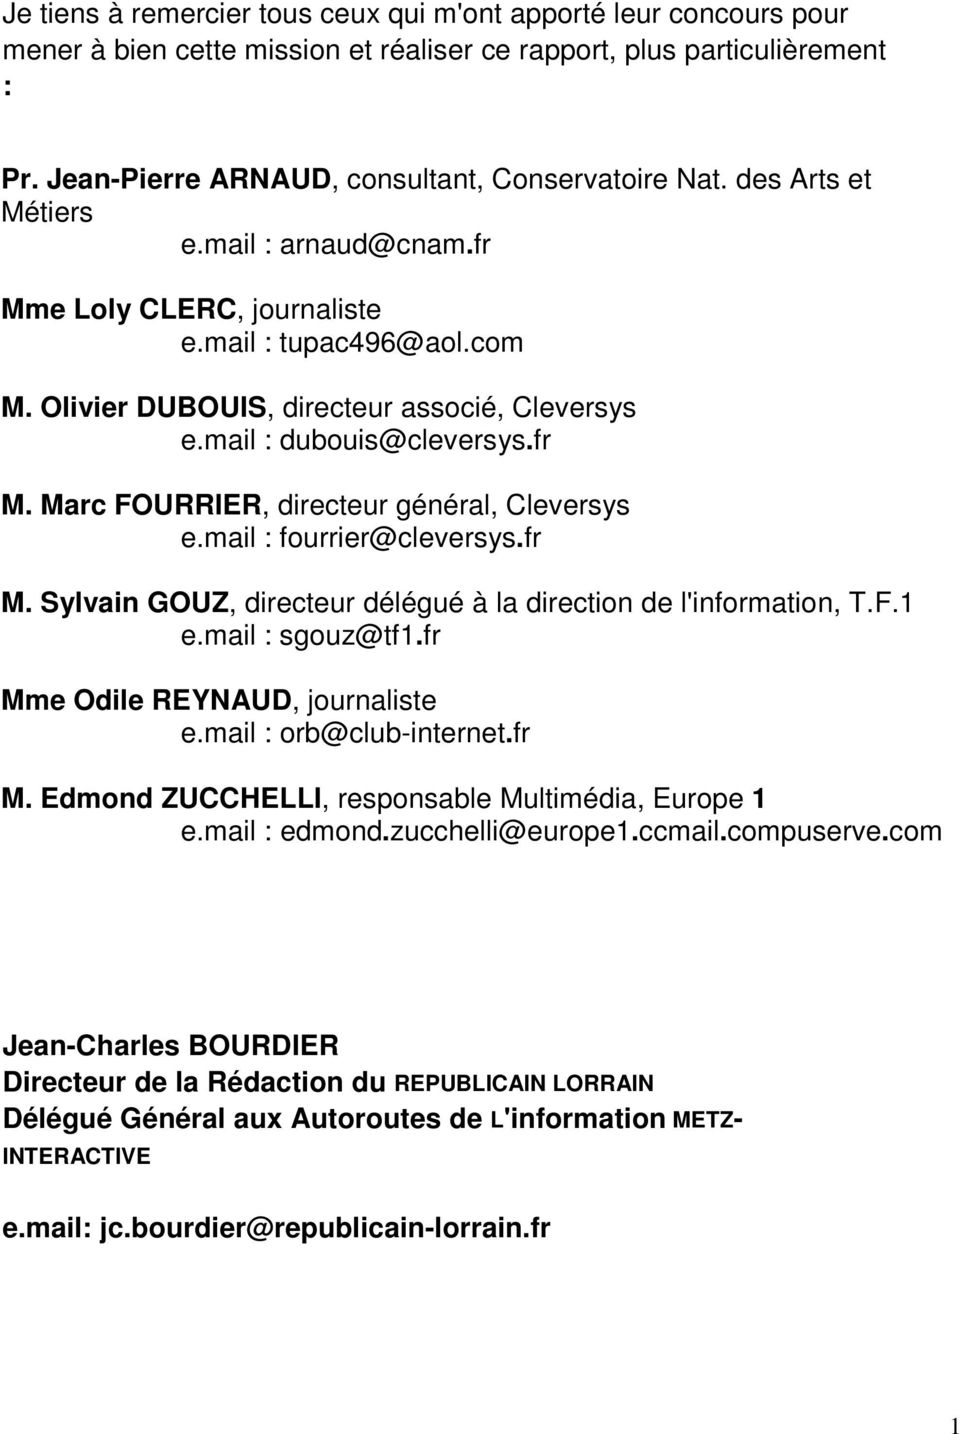 mail : fourrier@cleversys.fr M. Sylvain GOUZ, directeur délégué à la direction de l'information, T.F.1 e.mail : sgouz@tf1.fr Mme Odile REYNAUD, journaliste e.mail : orb@club-internet.fr M. Edmond ZUCCHELLI, responsable Multimédia, Europe 1 e.